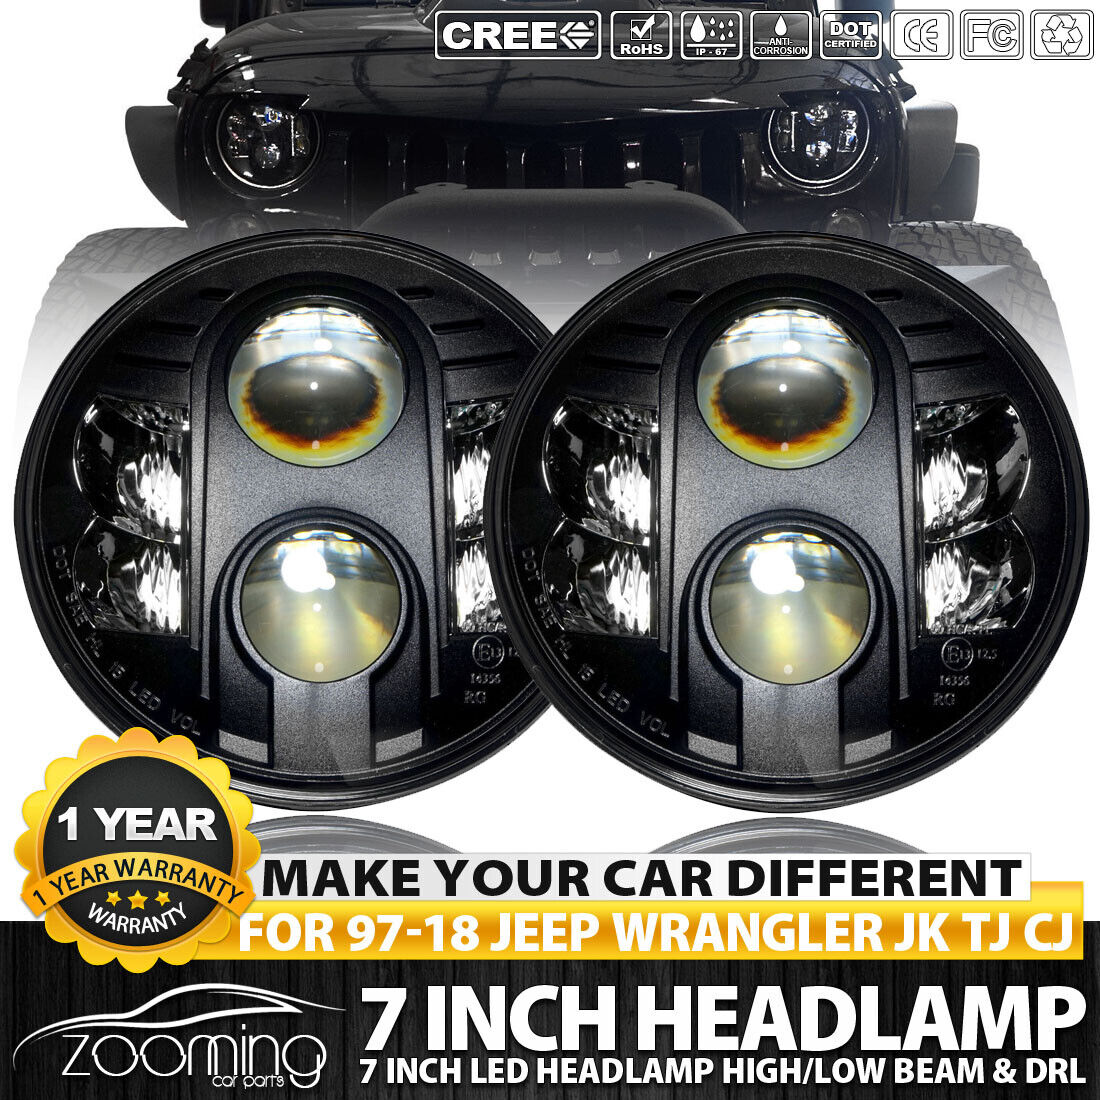 2x LED Projector Black Headlamps Headlights Xenon HID for ... Kenworth T Wiring Diagram Way on kenworth t300 wiring diagrams, kenworth air conditioner electrical diagram, kenworth truck wiring diagrams, kenworth air conditioning diagram, kenworth wiring manuals, kenworth t2000 fuel system, kenworth radio wiring diagram, kenworth parts diagram, kenworth fuse panel diagrams, kenworth t2000 repair manual, kenworth t800 wiring diagram, kenworth wiring diagrams for 1996,